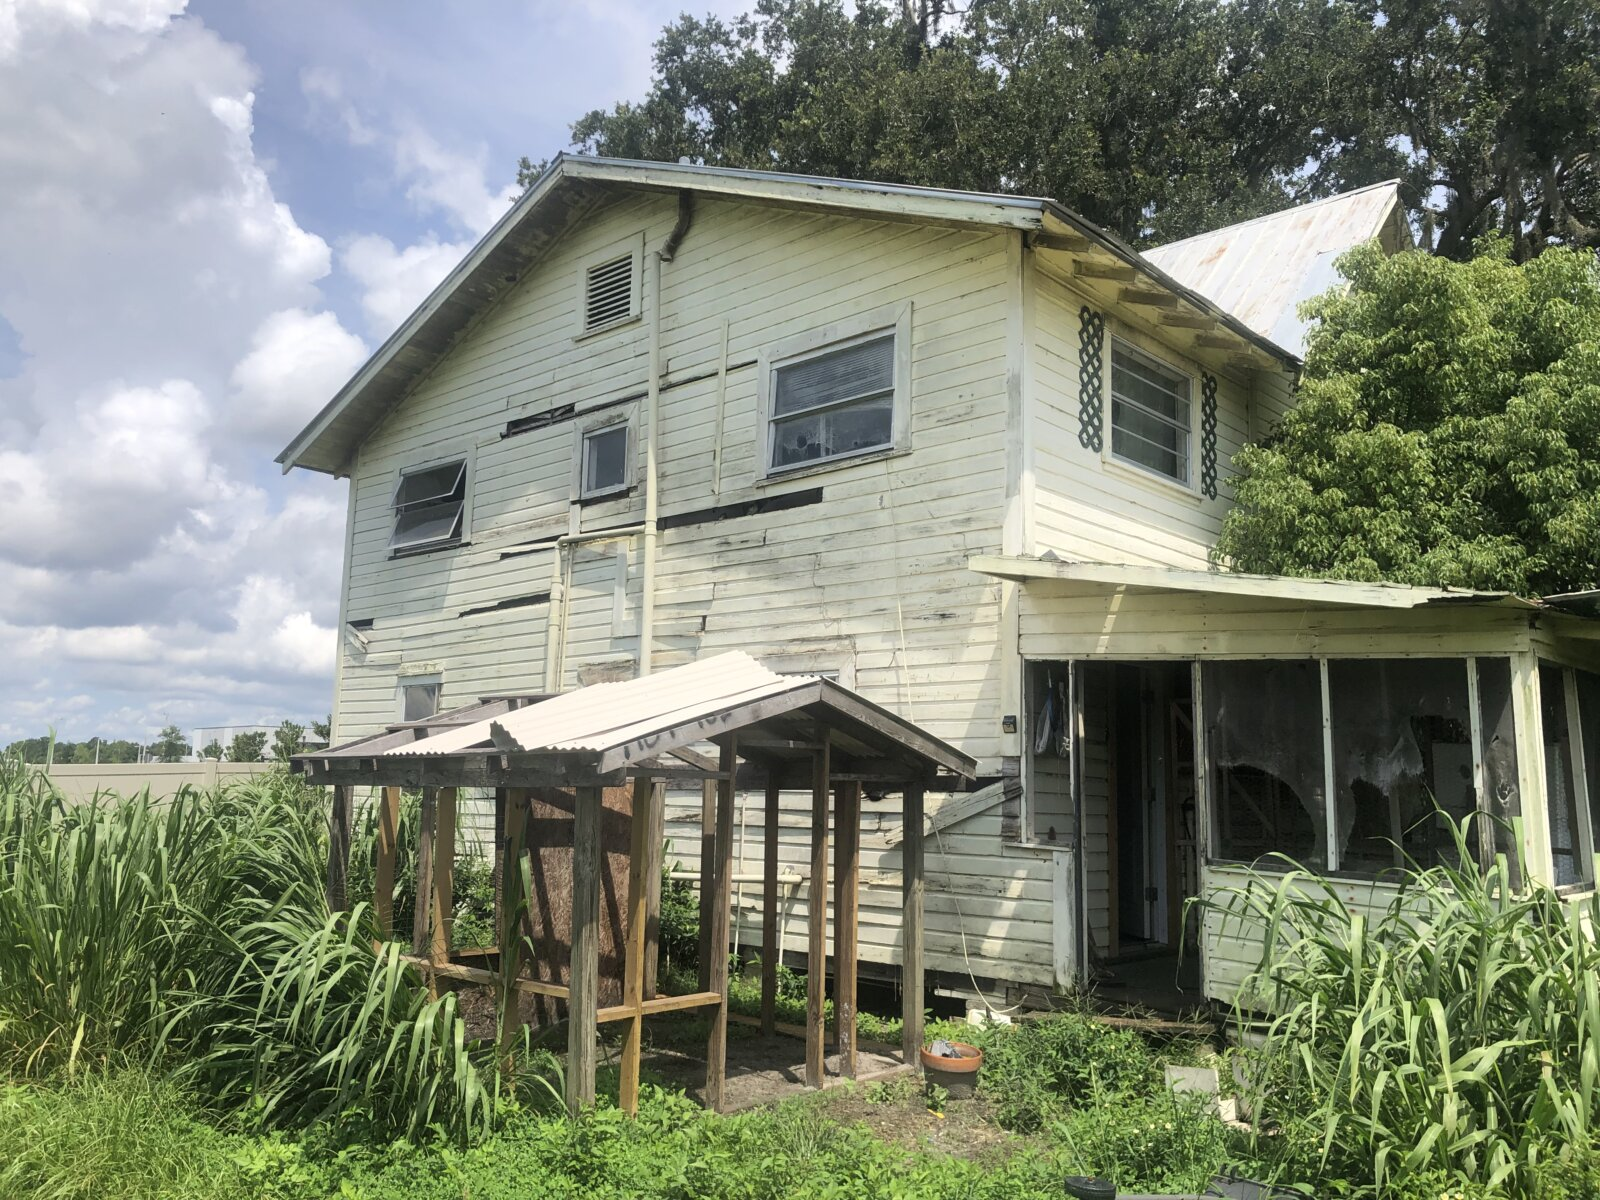 Sell a Home That Needs Repairs